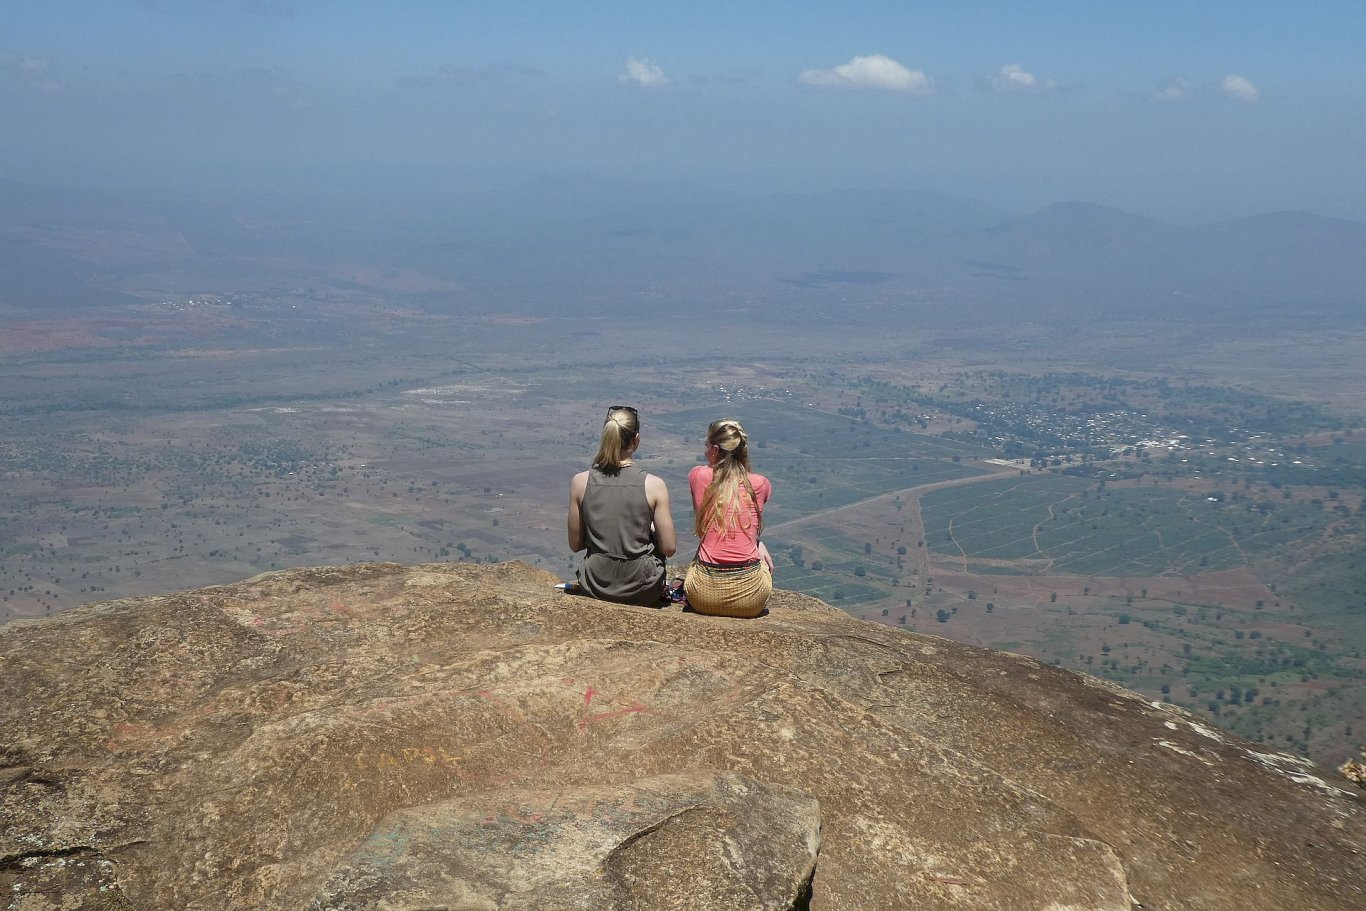 5 DAY BUDGET CULTURAL TOURISM TO USAMBARA MOUNTAINS